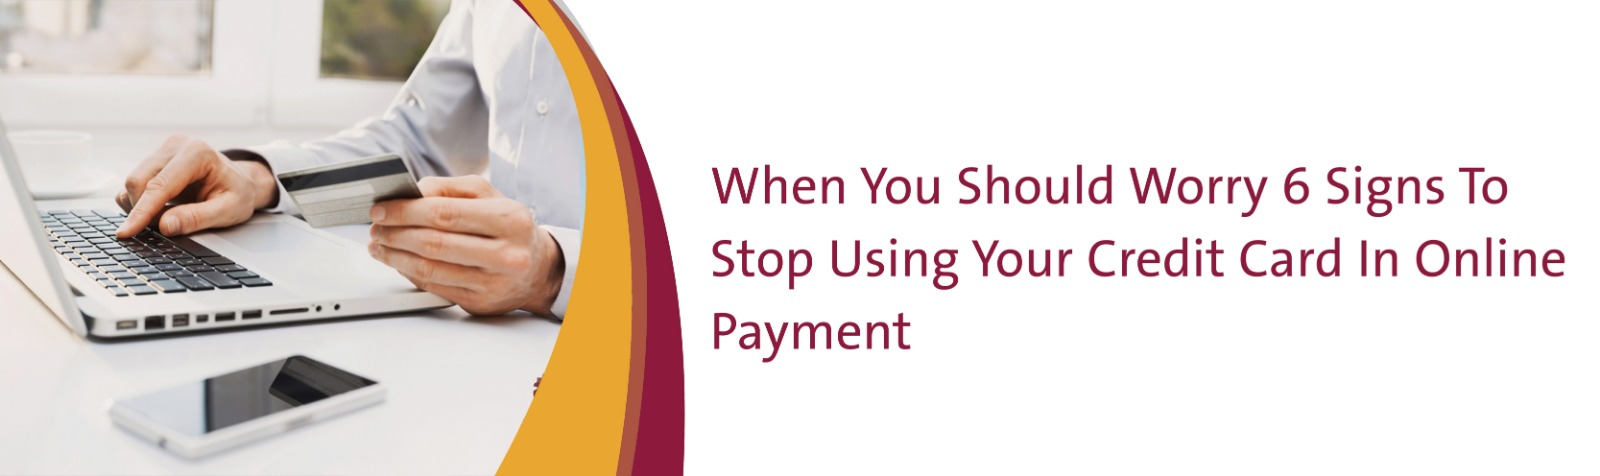 6 Signs To Stop Using Your Credit Card In Online Payment - Sadad Payment Solutions - Sadad.qa - banner